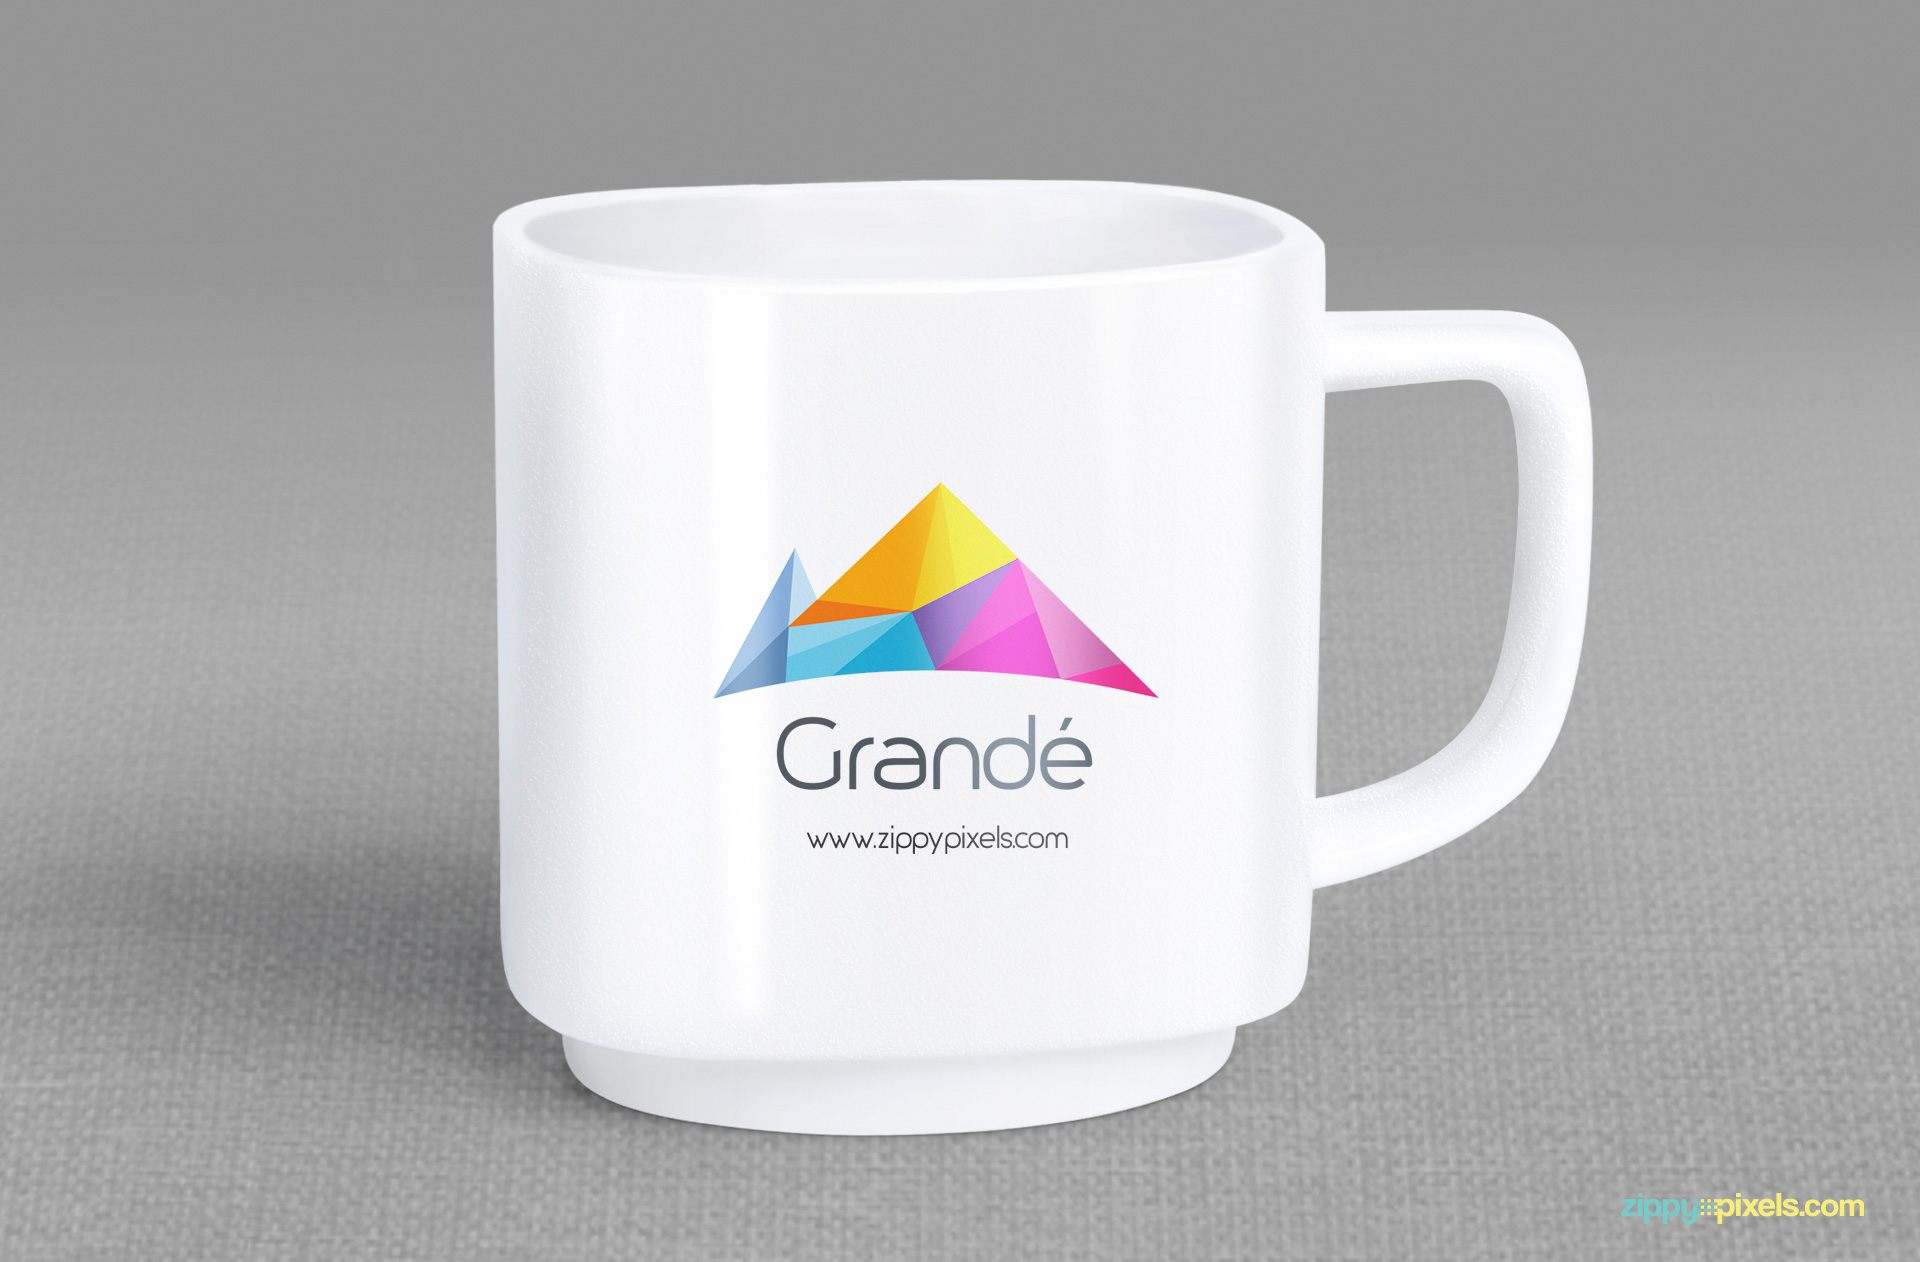 Add your branding design on the exterior of the mug mockup.